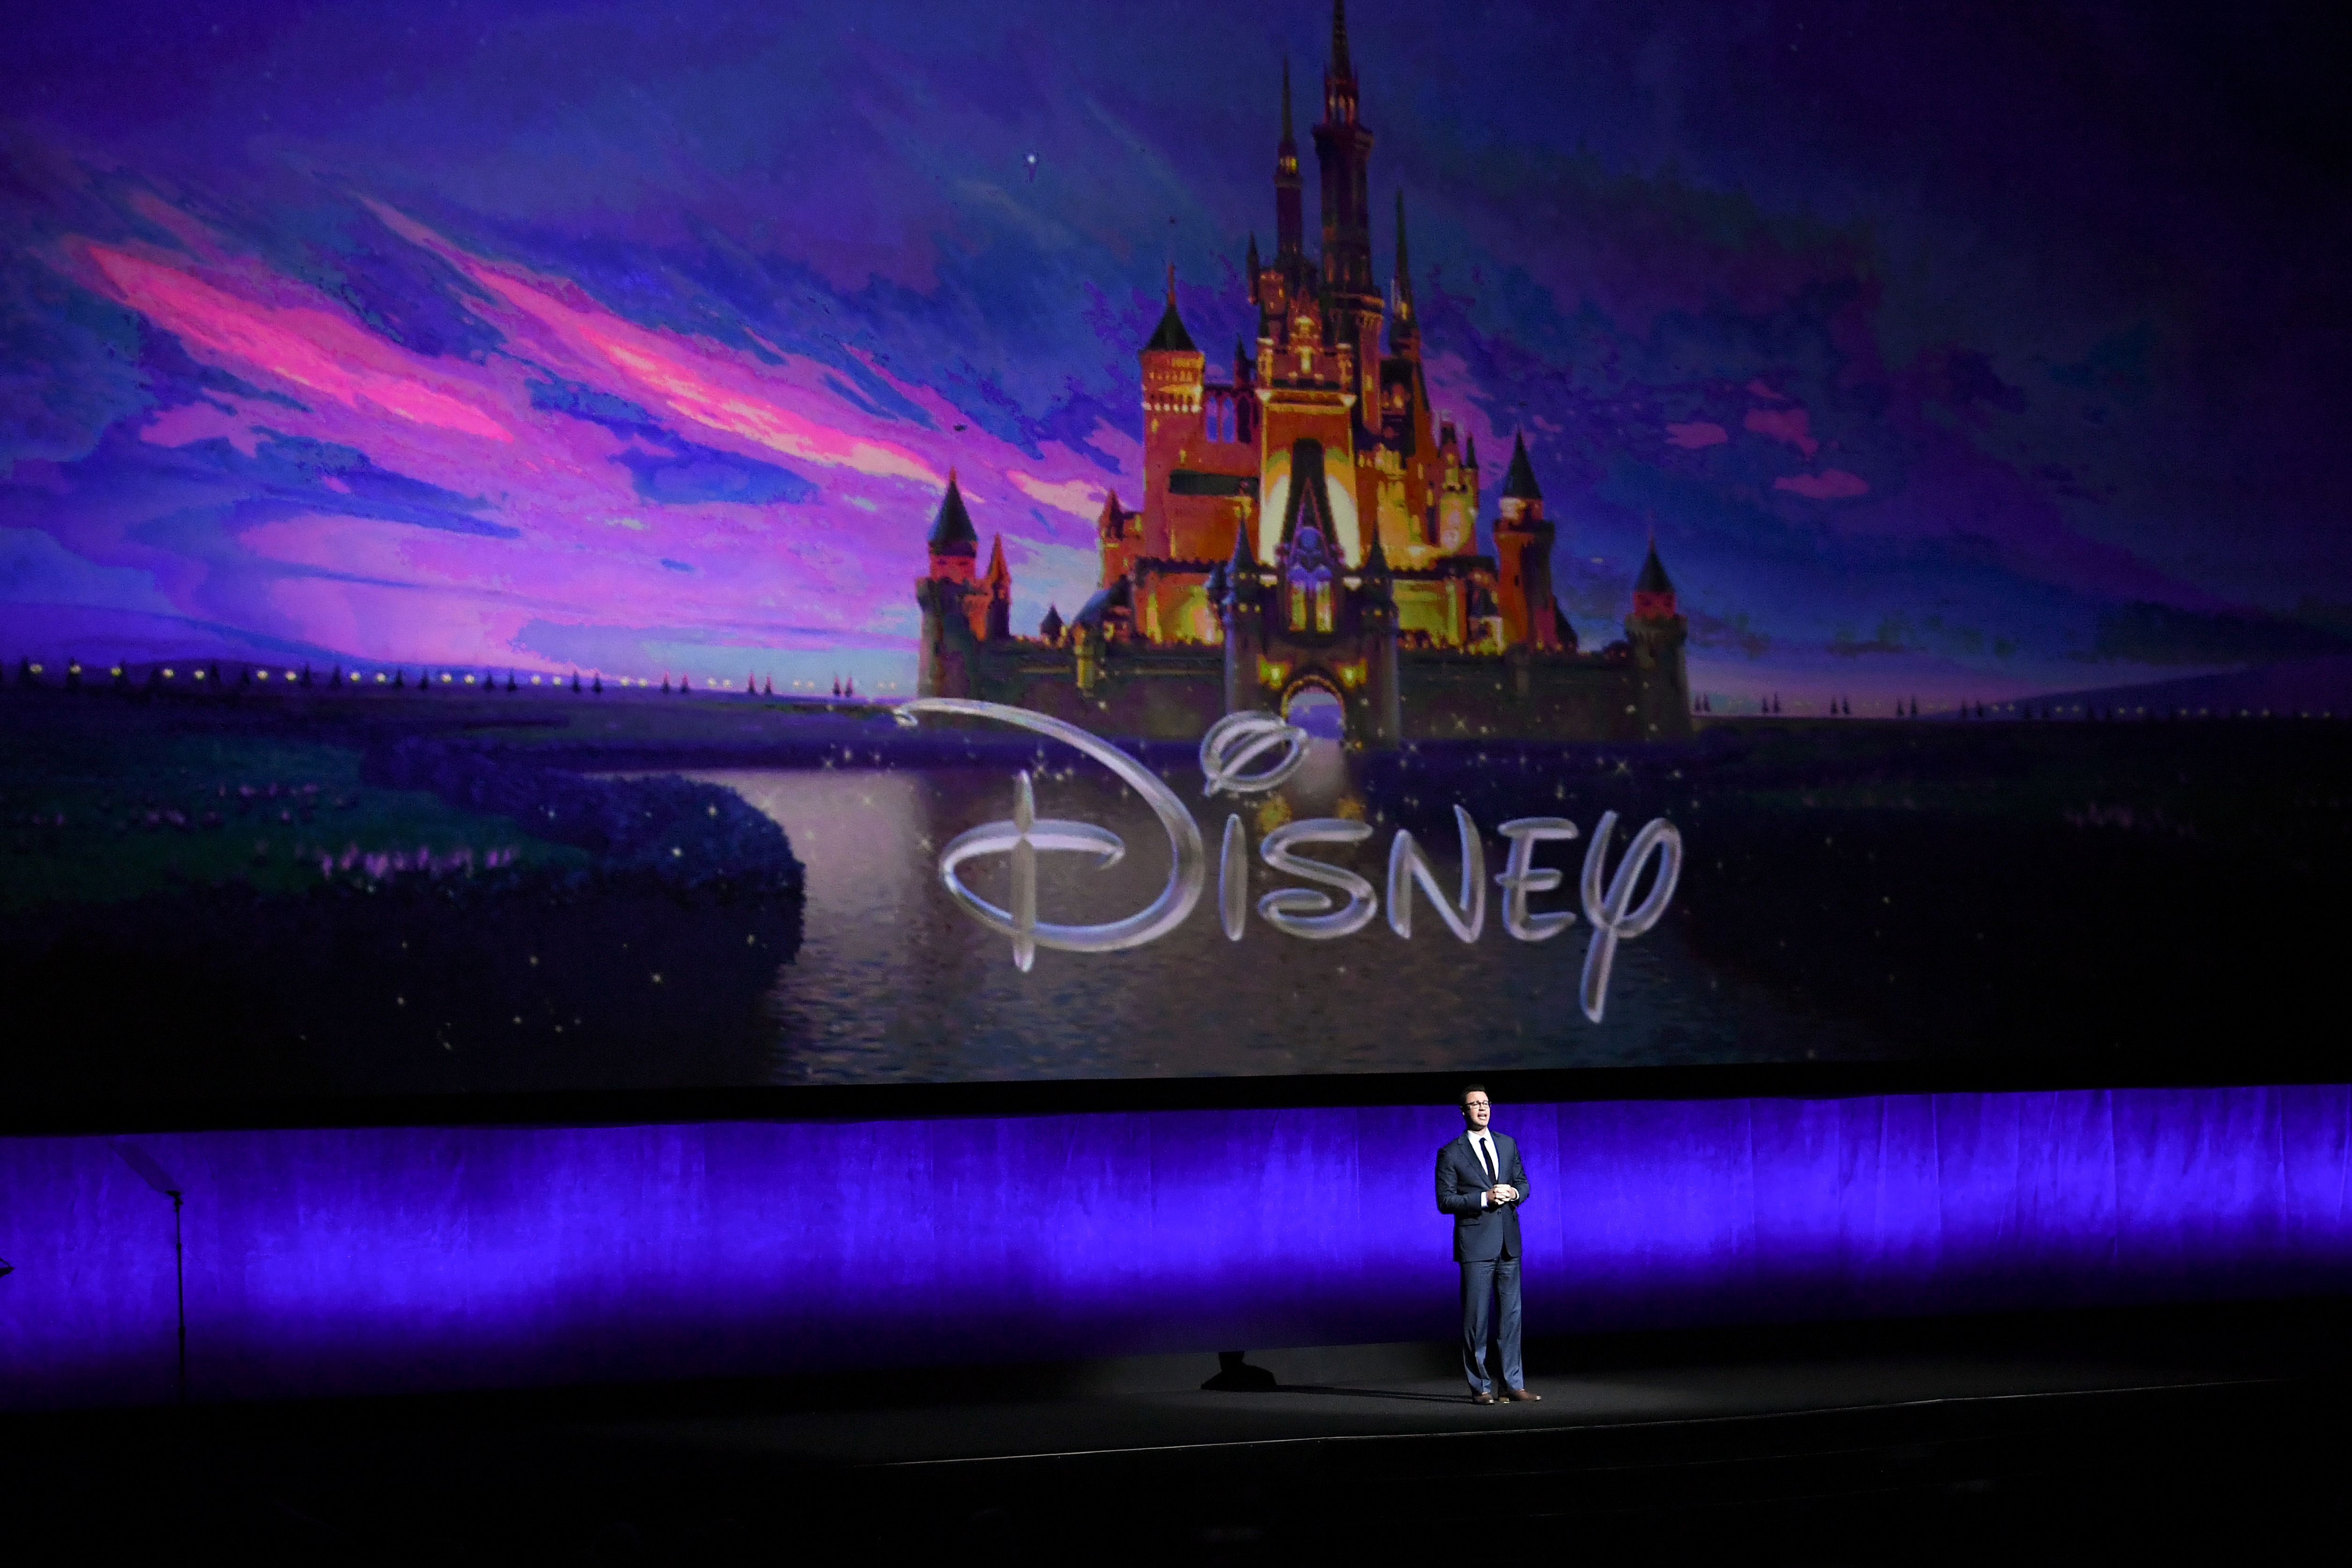 Disney Could Buy Comcast's 30% Share in Hulu